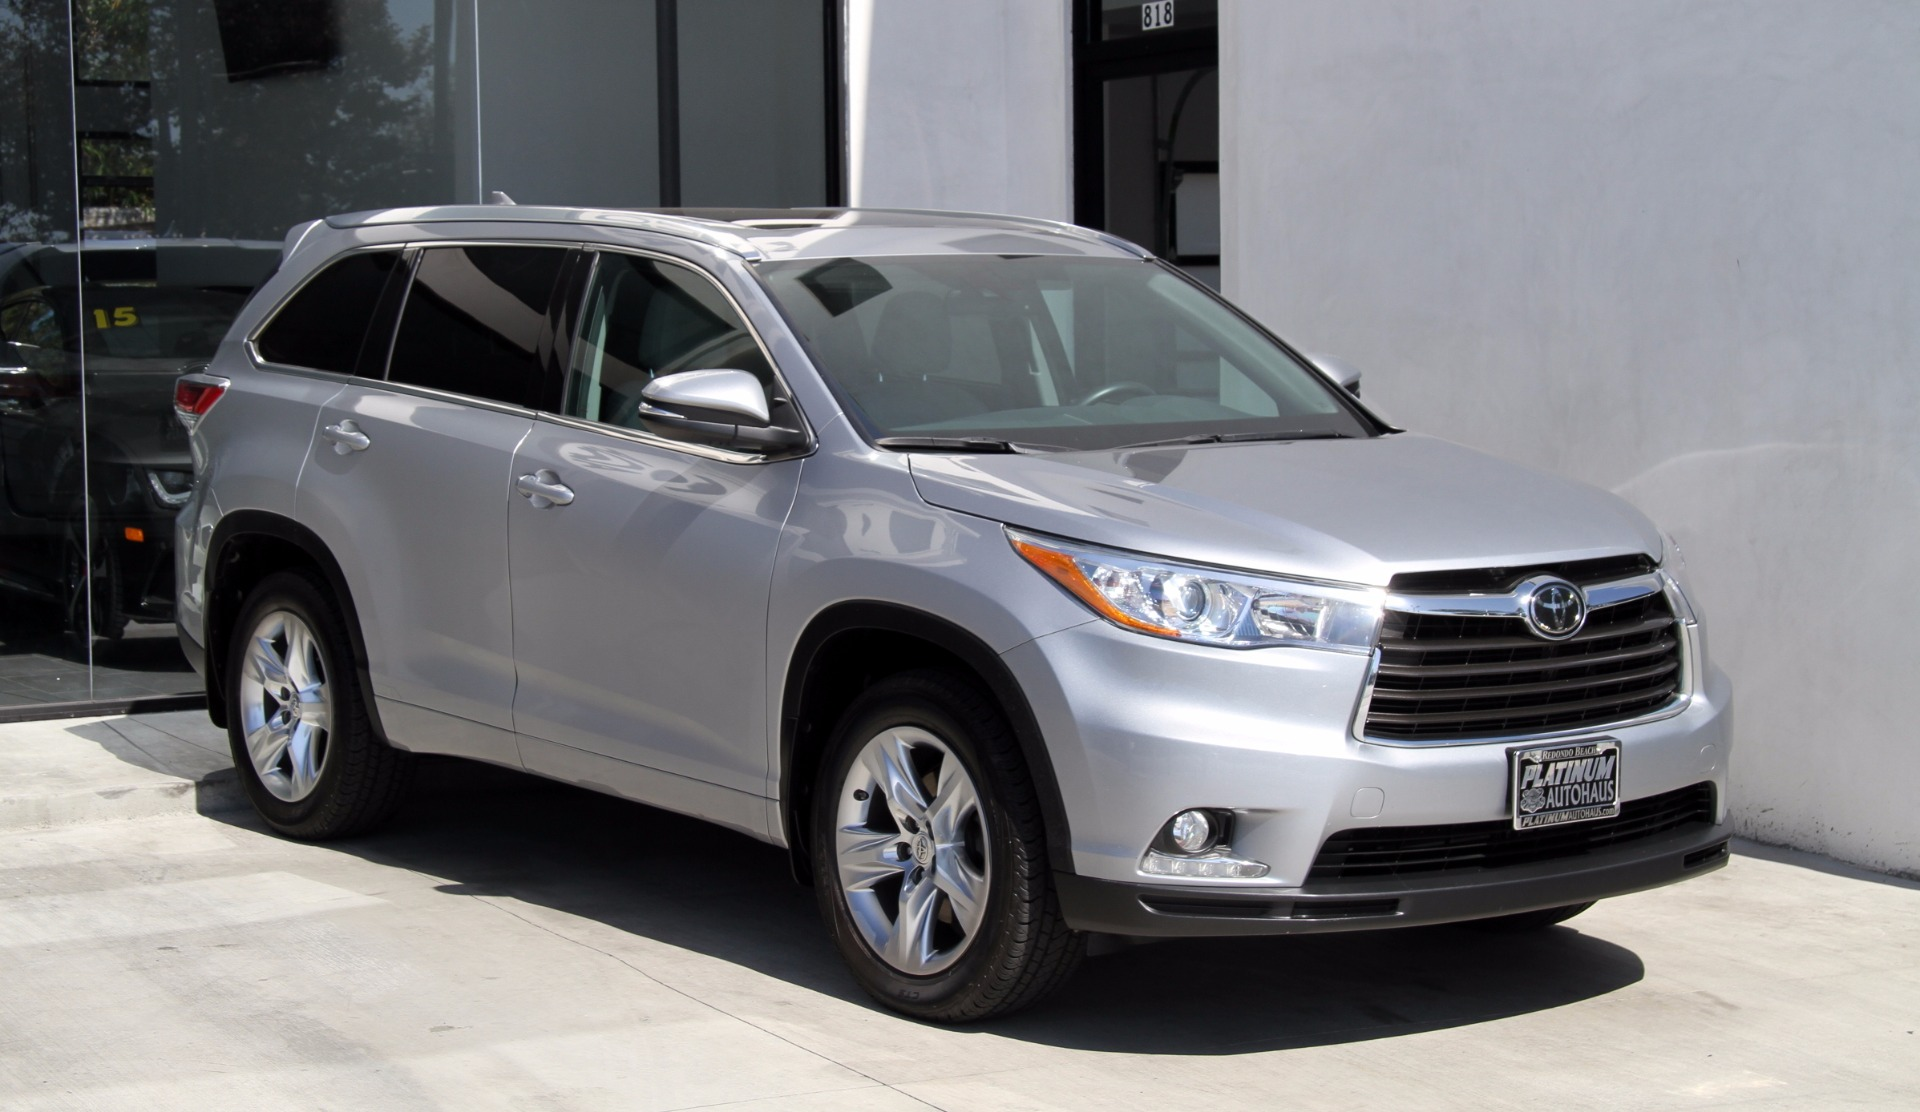 2015 toyota highlander limited stock 5829b for sale near. Black Bedroom Furniture Sets. Home Design Ideas